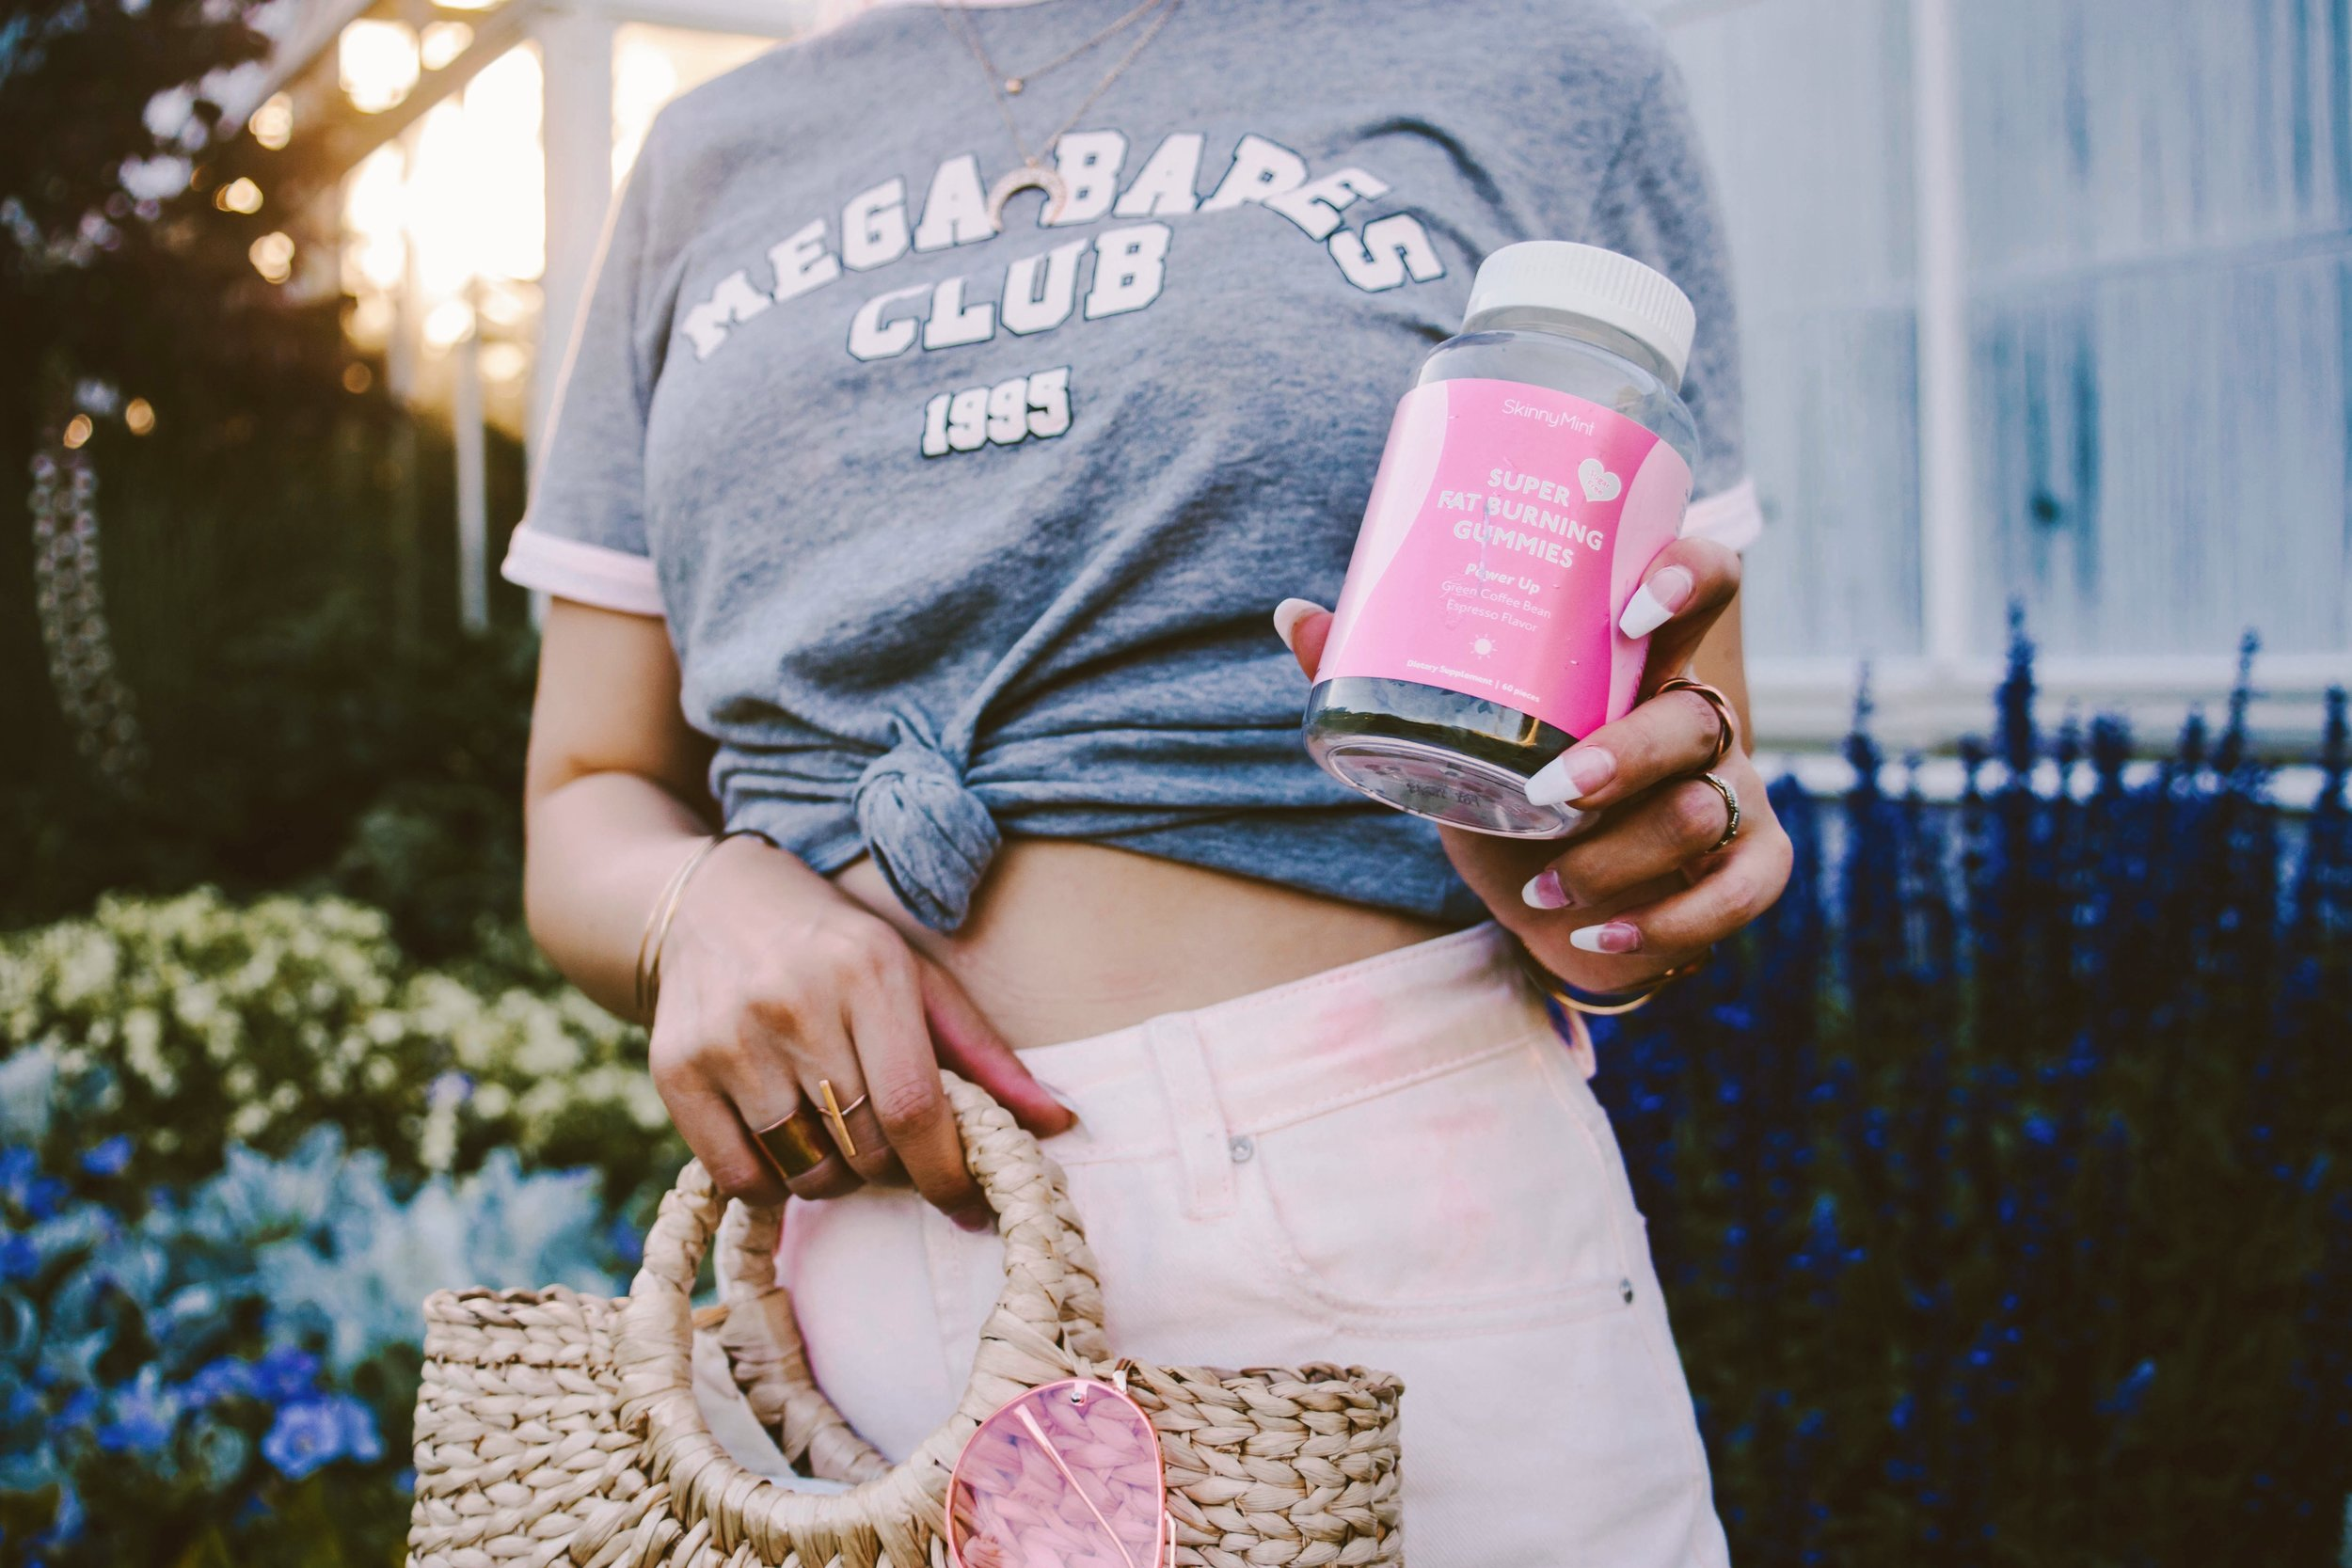 SkinnyMint Super Fat Burning Gummies_Purple Hair_Lifestyle_healthy-ootd-pony tail-summer-happy-supliment-fut burning-weight loss-style blogger-seattle fashion blogger-japanese-colored hair 2